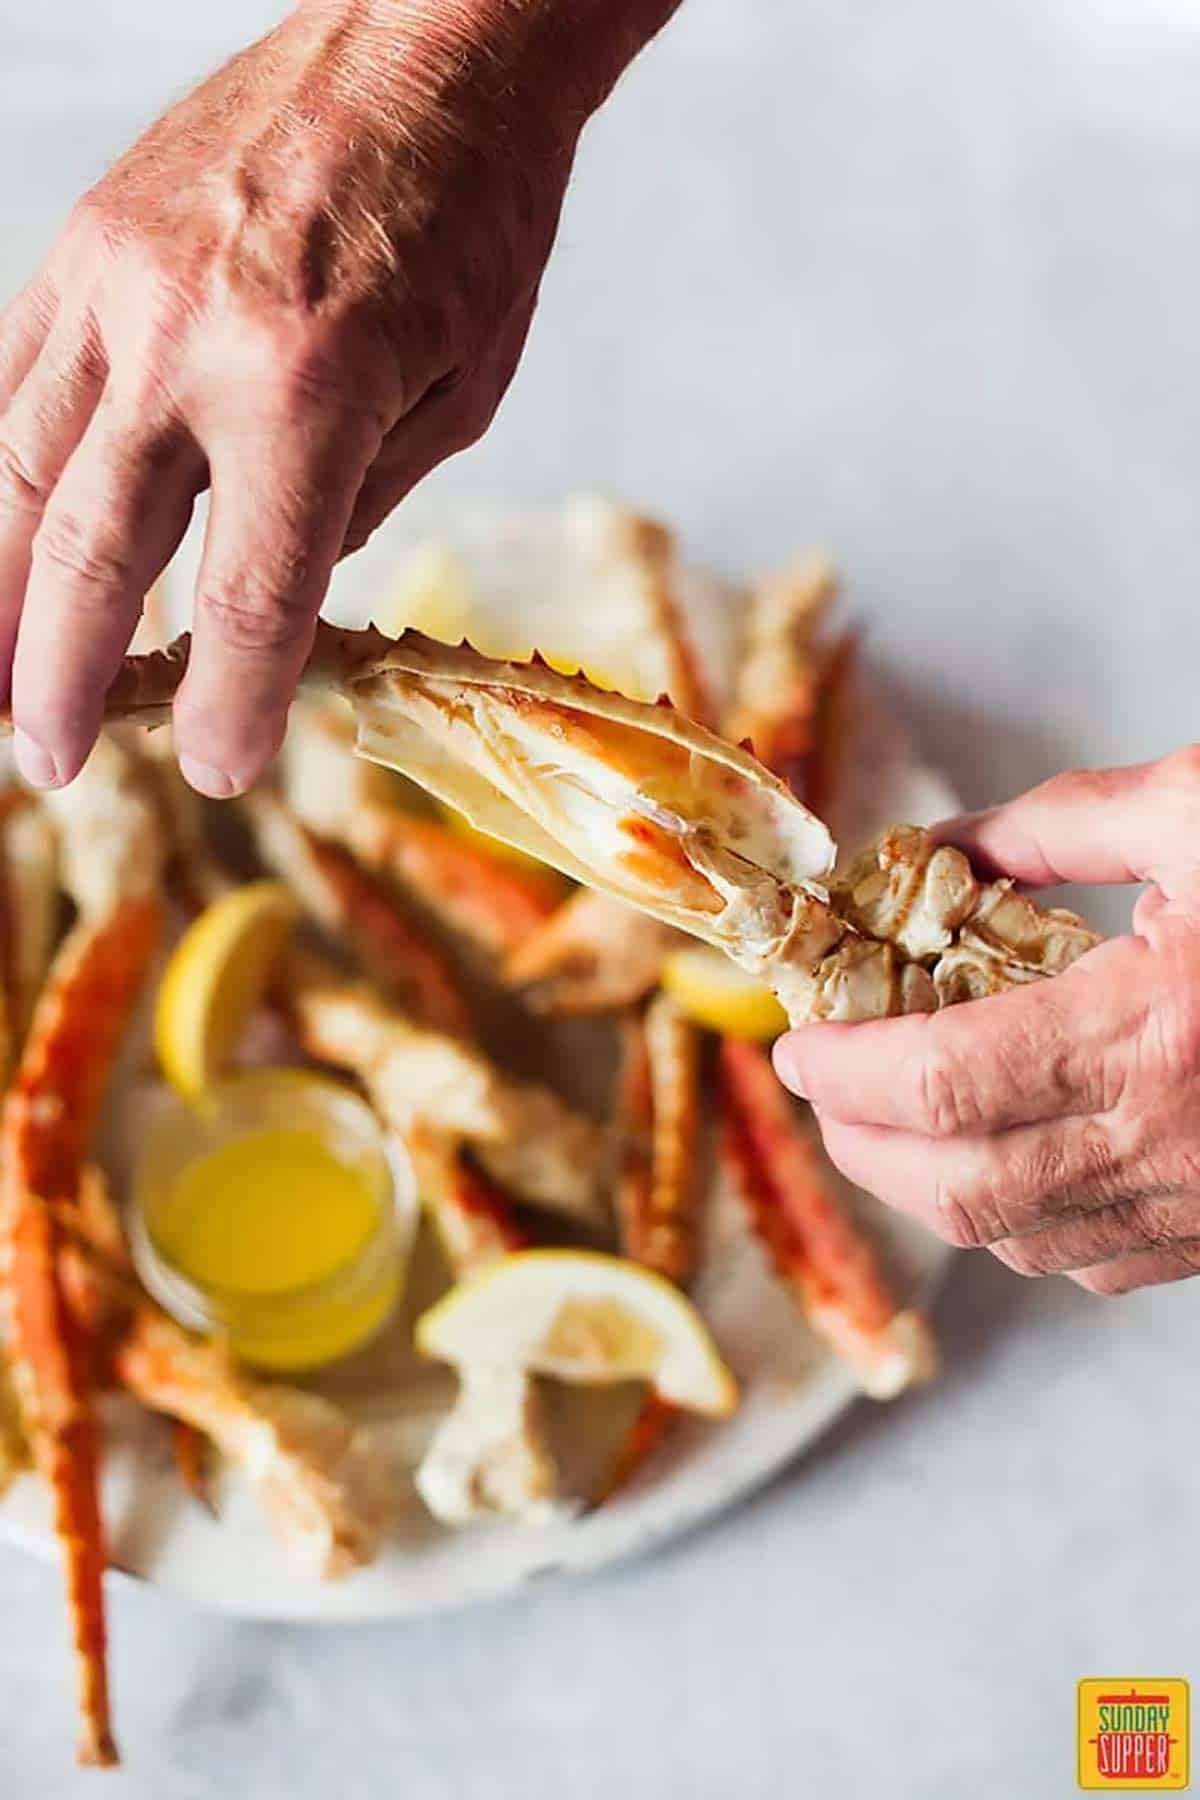 Breaking open a steamed crab leg with hands